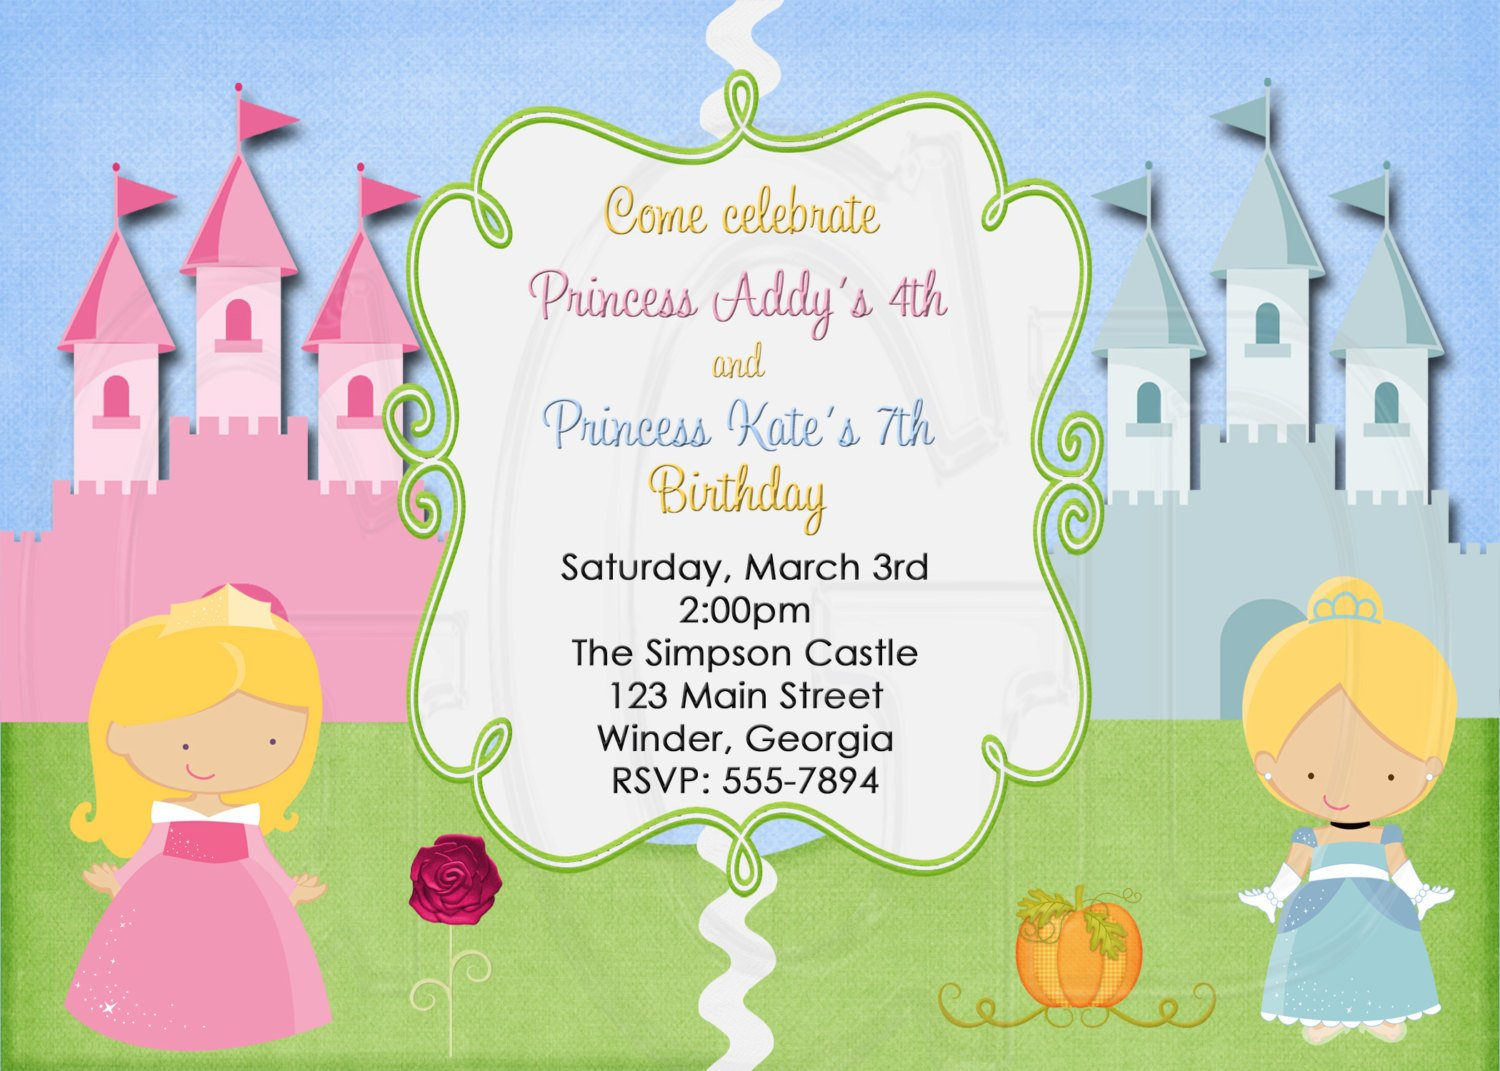 Joint birthday party invitations bagvania free printable princesses joint birthday party invitations stopboris Images